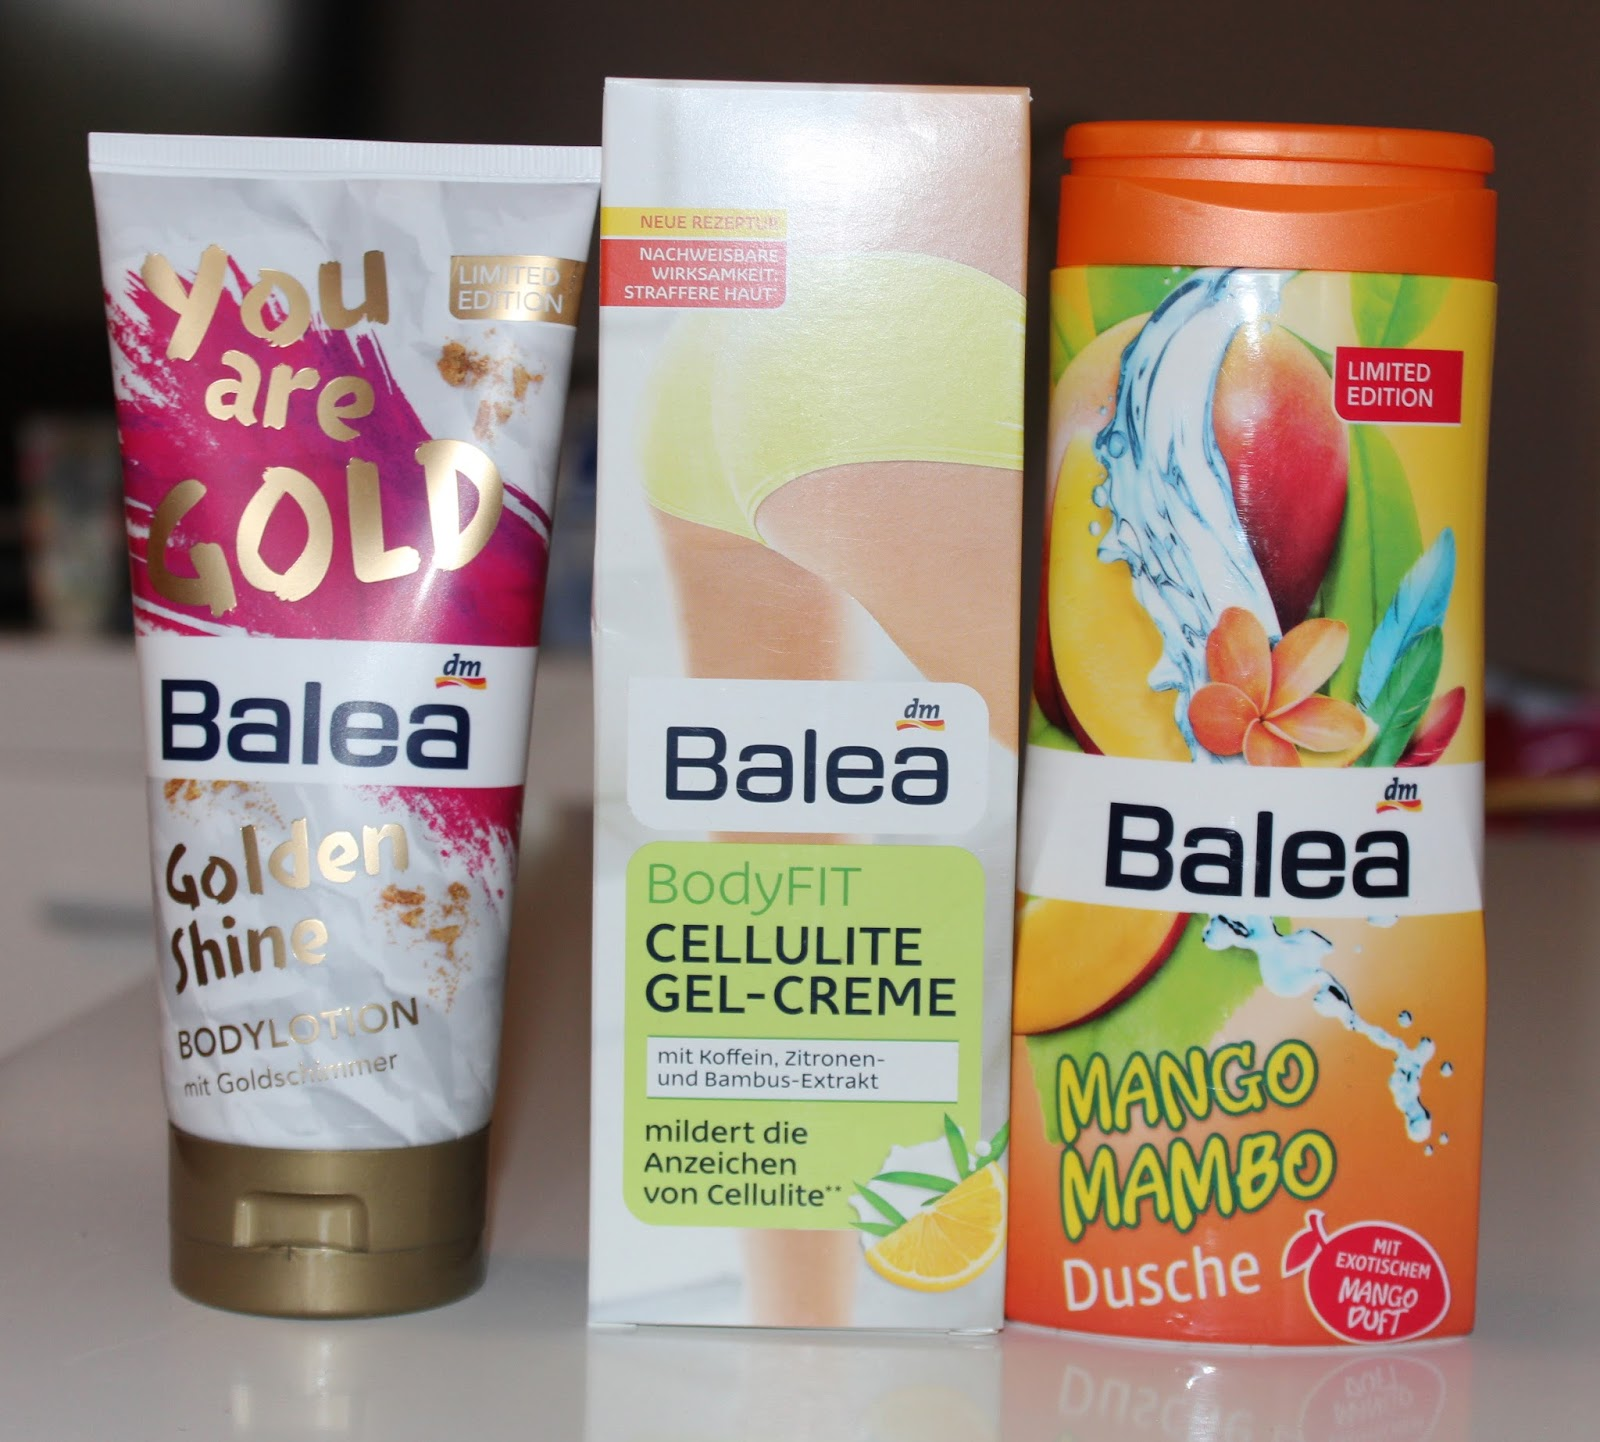 DM #6: BALEA - Golden Shine, Cellulite Gel-Creme, Mango Mambo gel za tuširanje